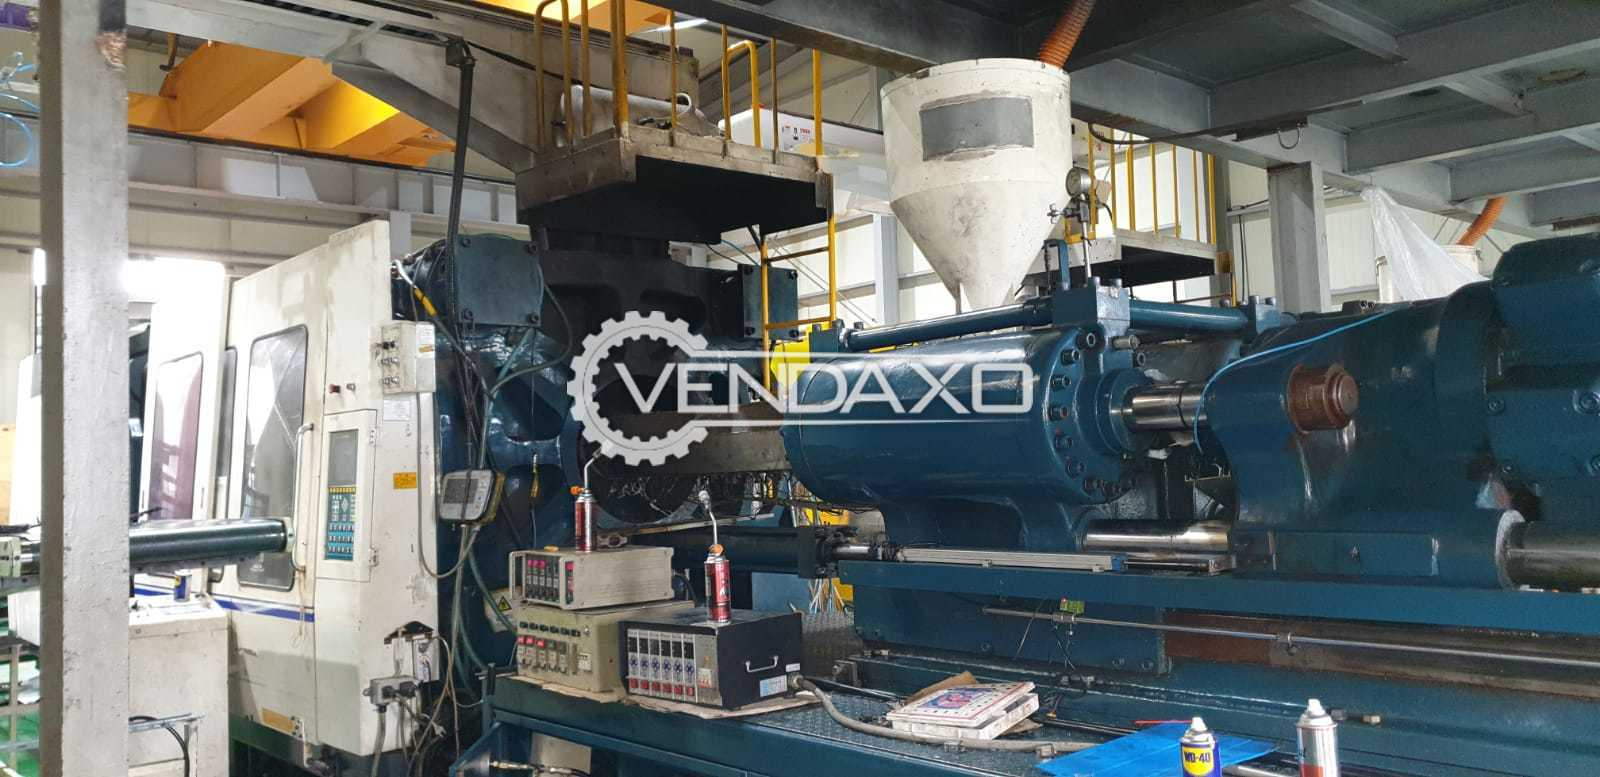 Dae Yong Injection Moulding Machine - 850 Ton